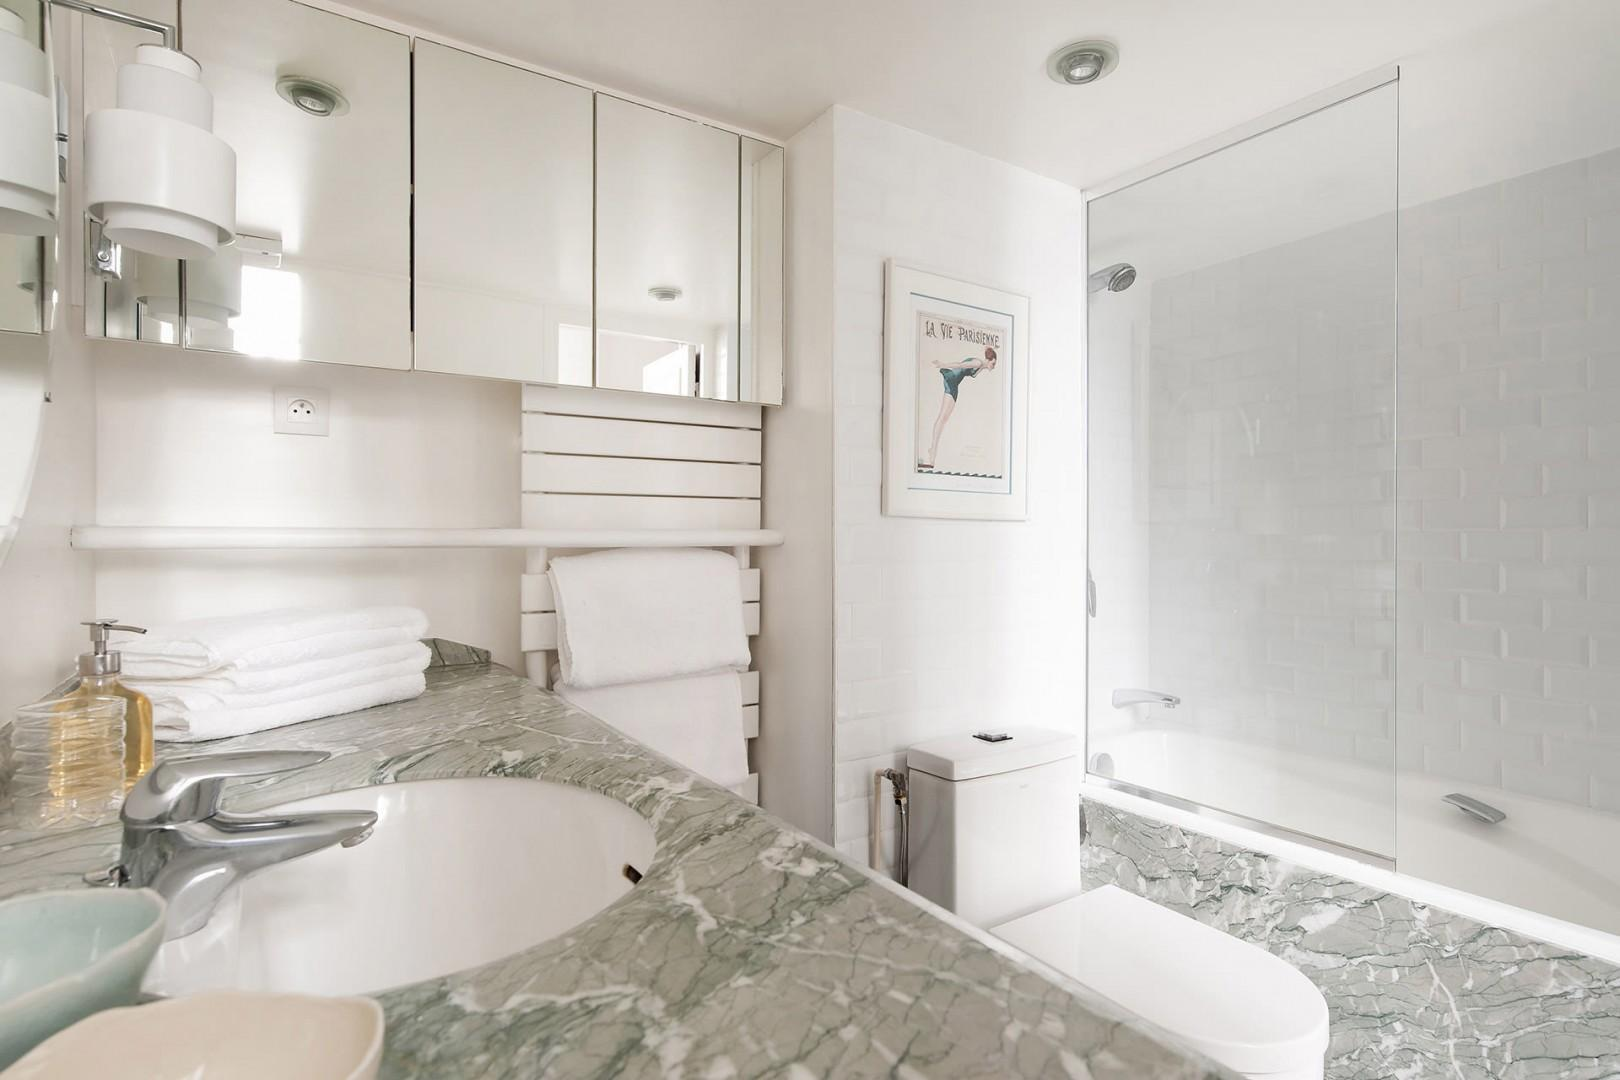 Pamper yourself in the sleek and functional bathroom.